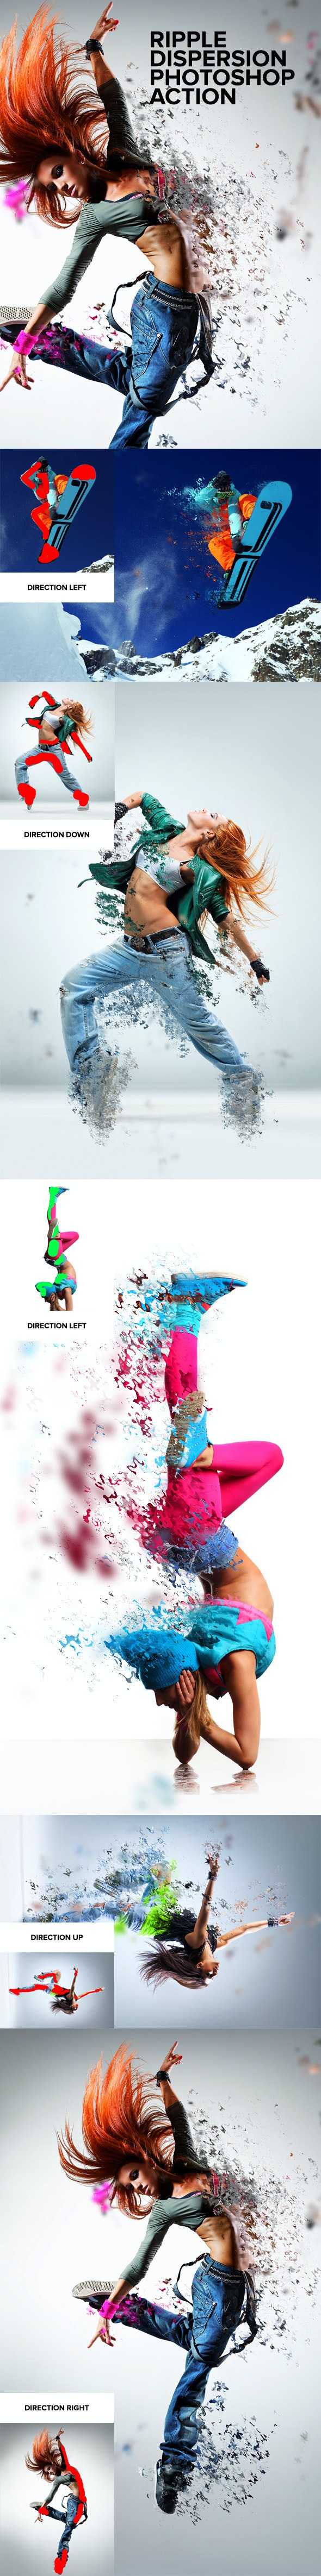 Ripple Dispersion Photoshop Action - Photo Effects Actions